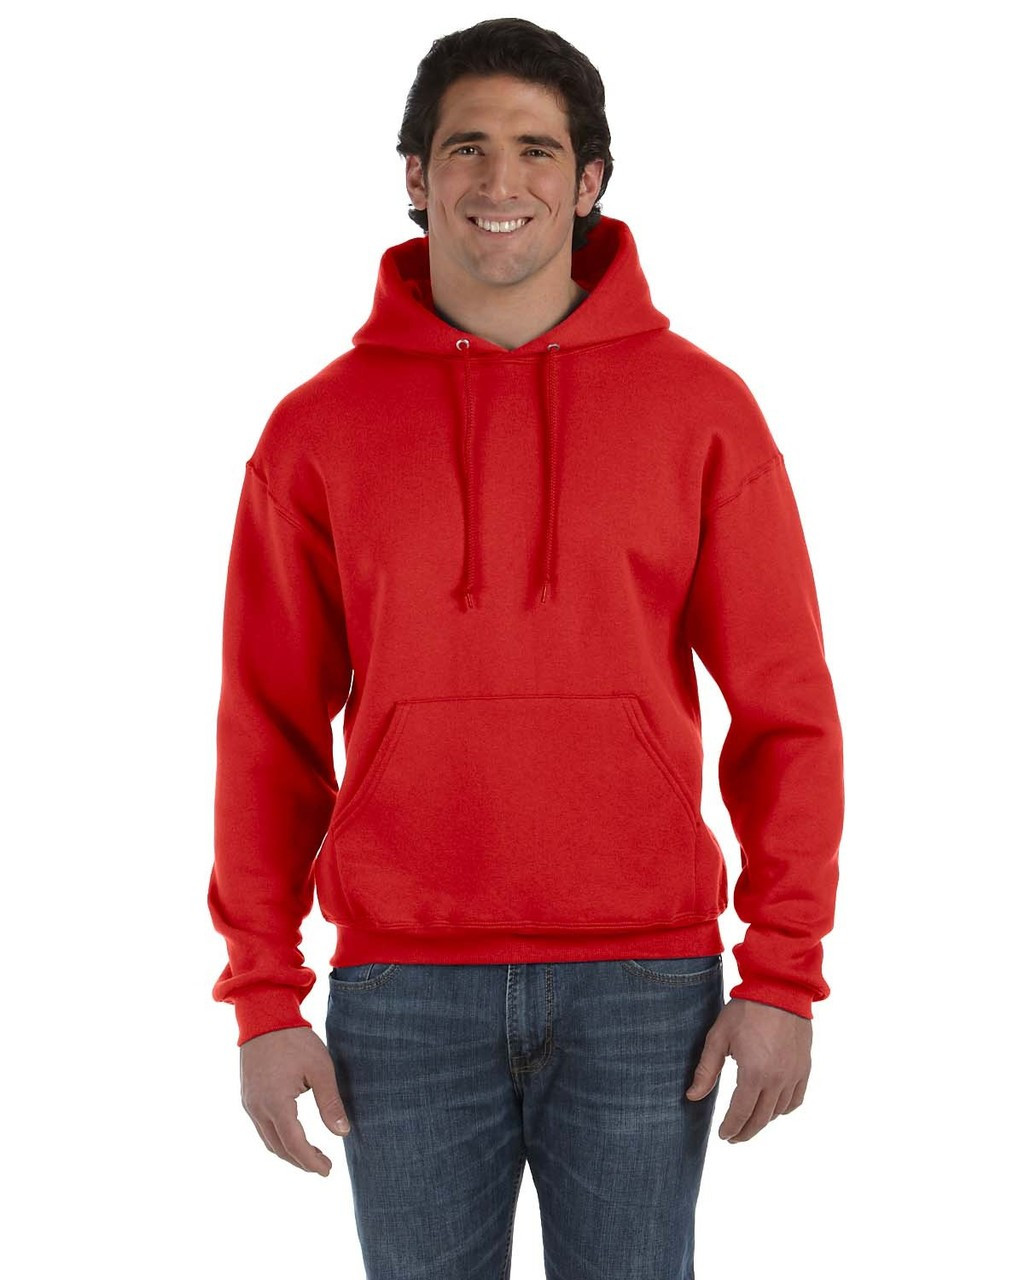 True Red - 82130 Fruit of the Loom Supercotton™ Pullover Hoodie | Blankclothing.ca